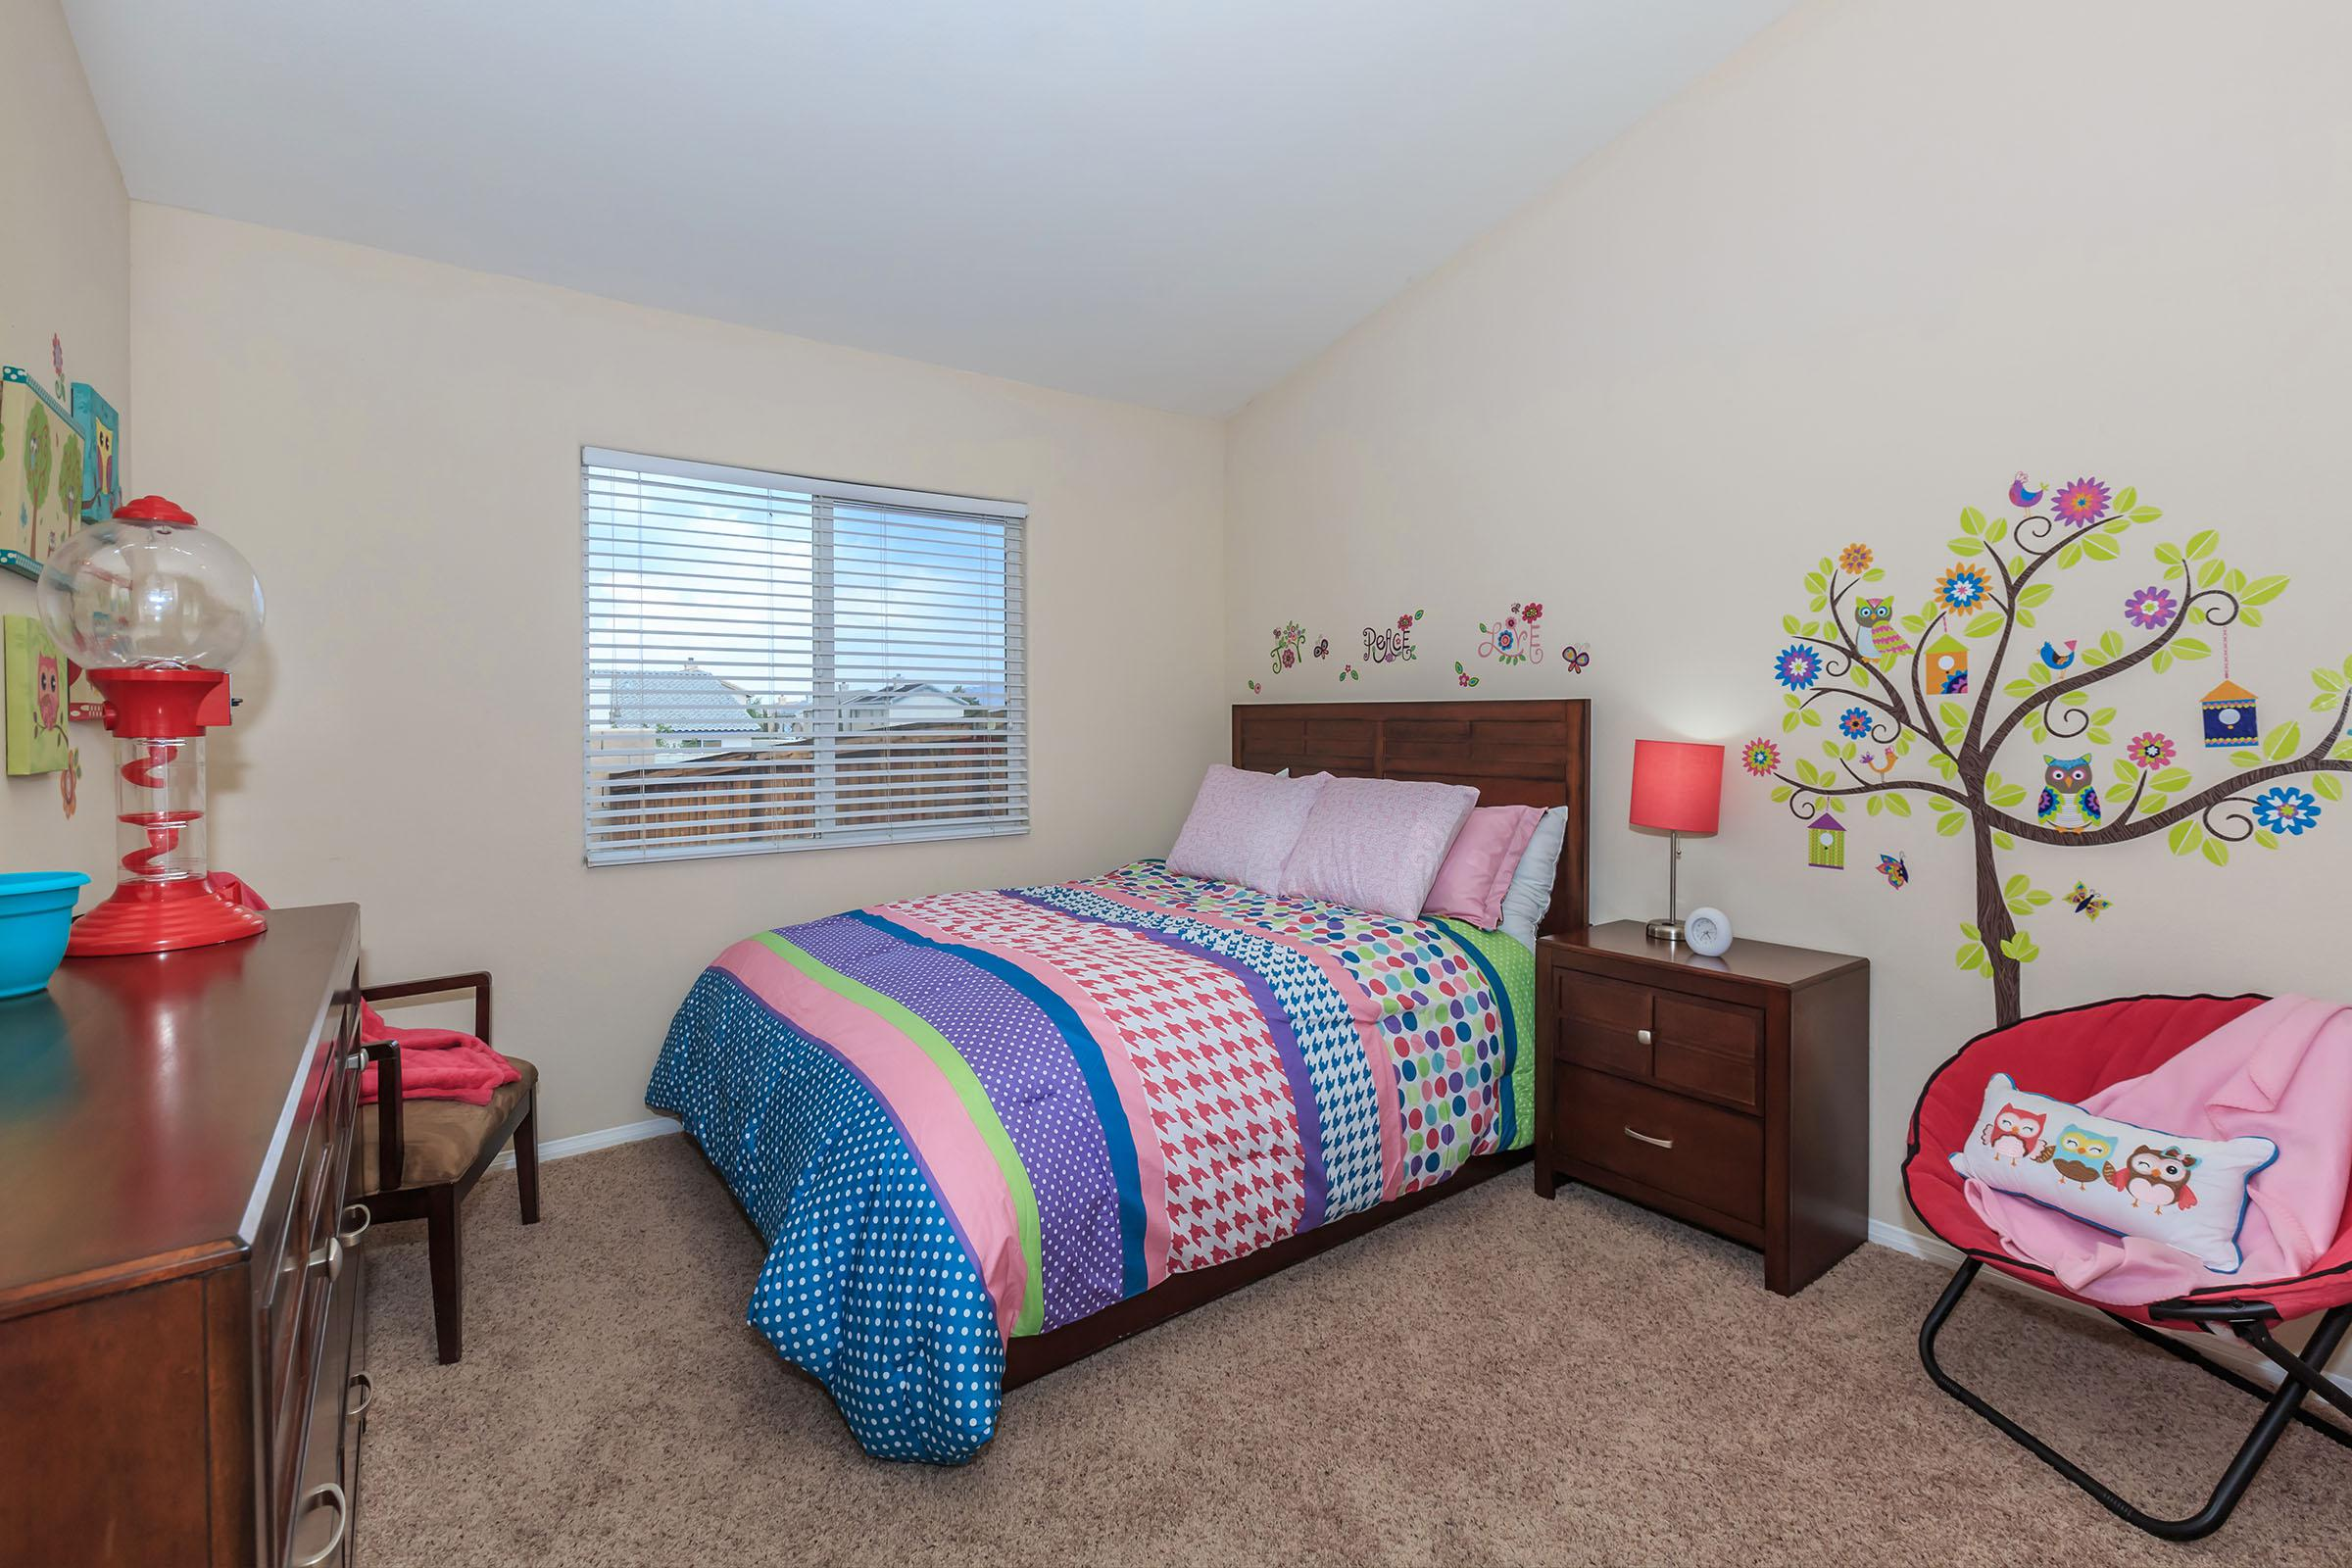 LUXURY APARTMENTS IN VICTORVILLE, CA